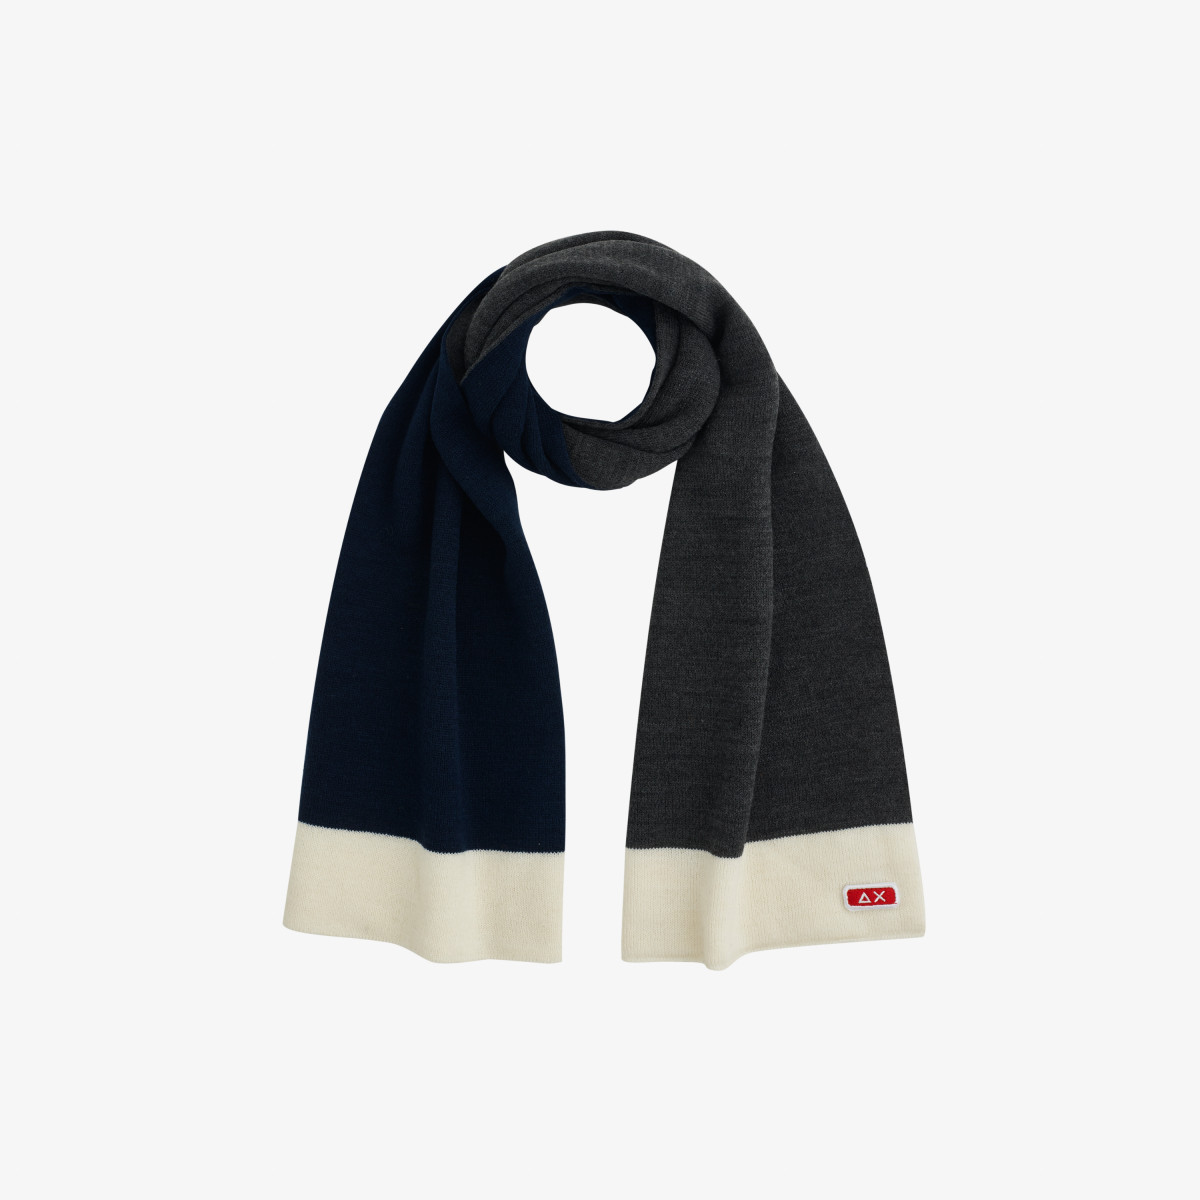 BOY'S SCARF BASIC GRIGIO SCURO